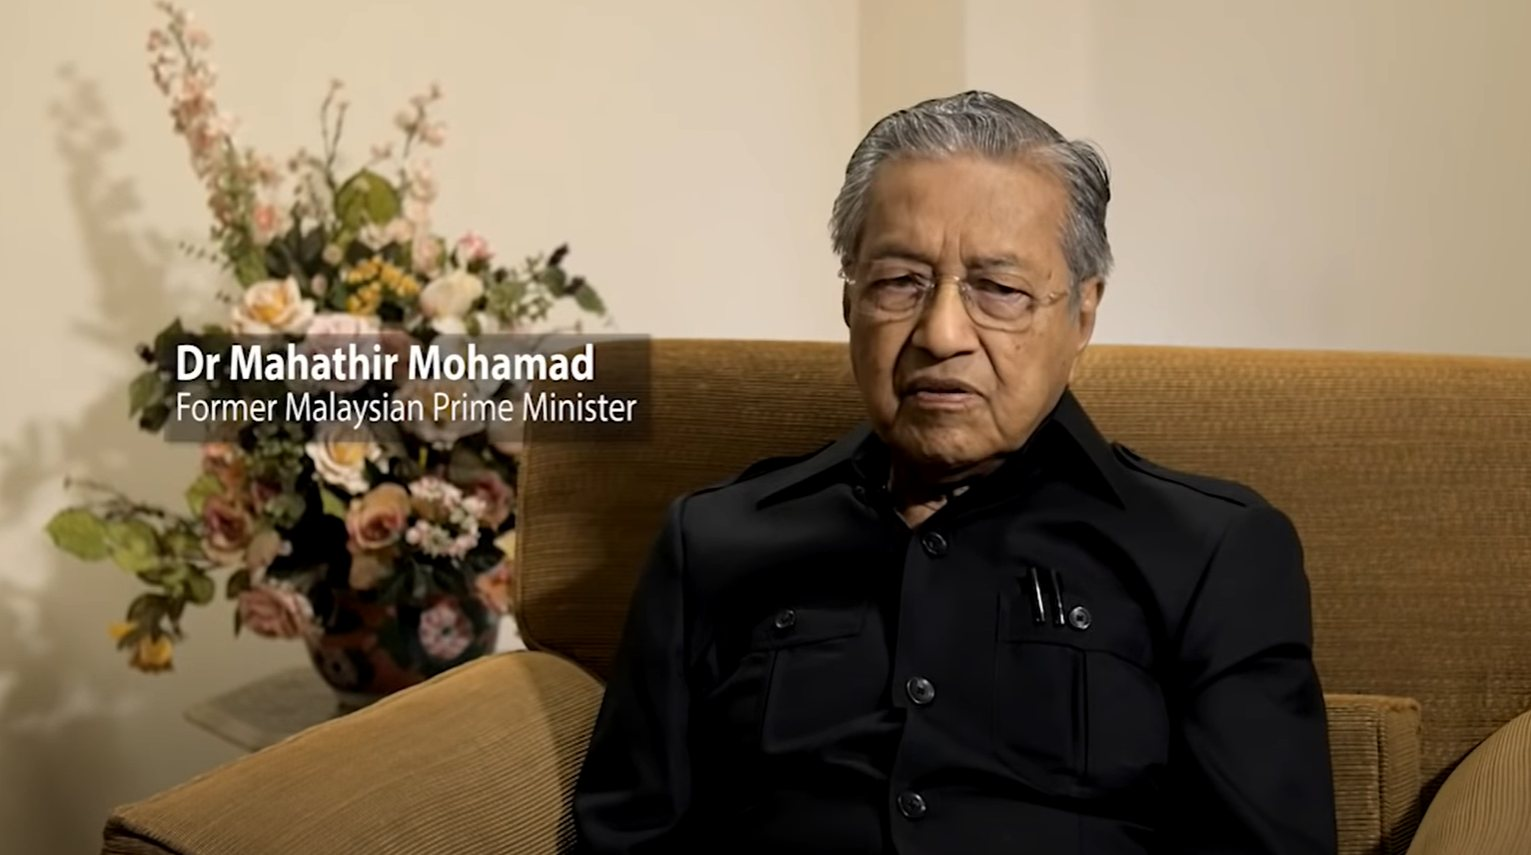 Ex-Malaysia PM slams UAE-Israel normalisation deal as 'divisive'